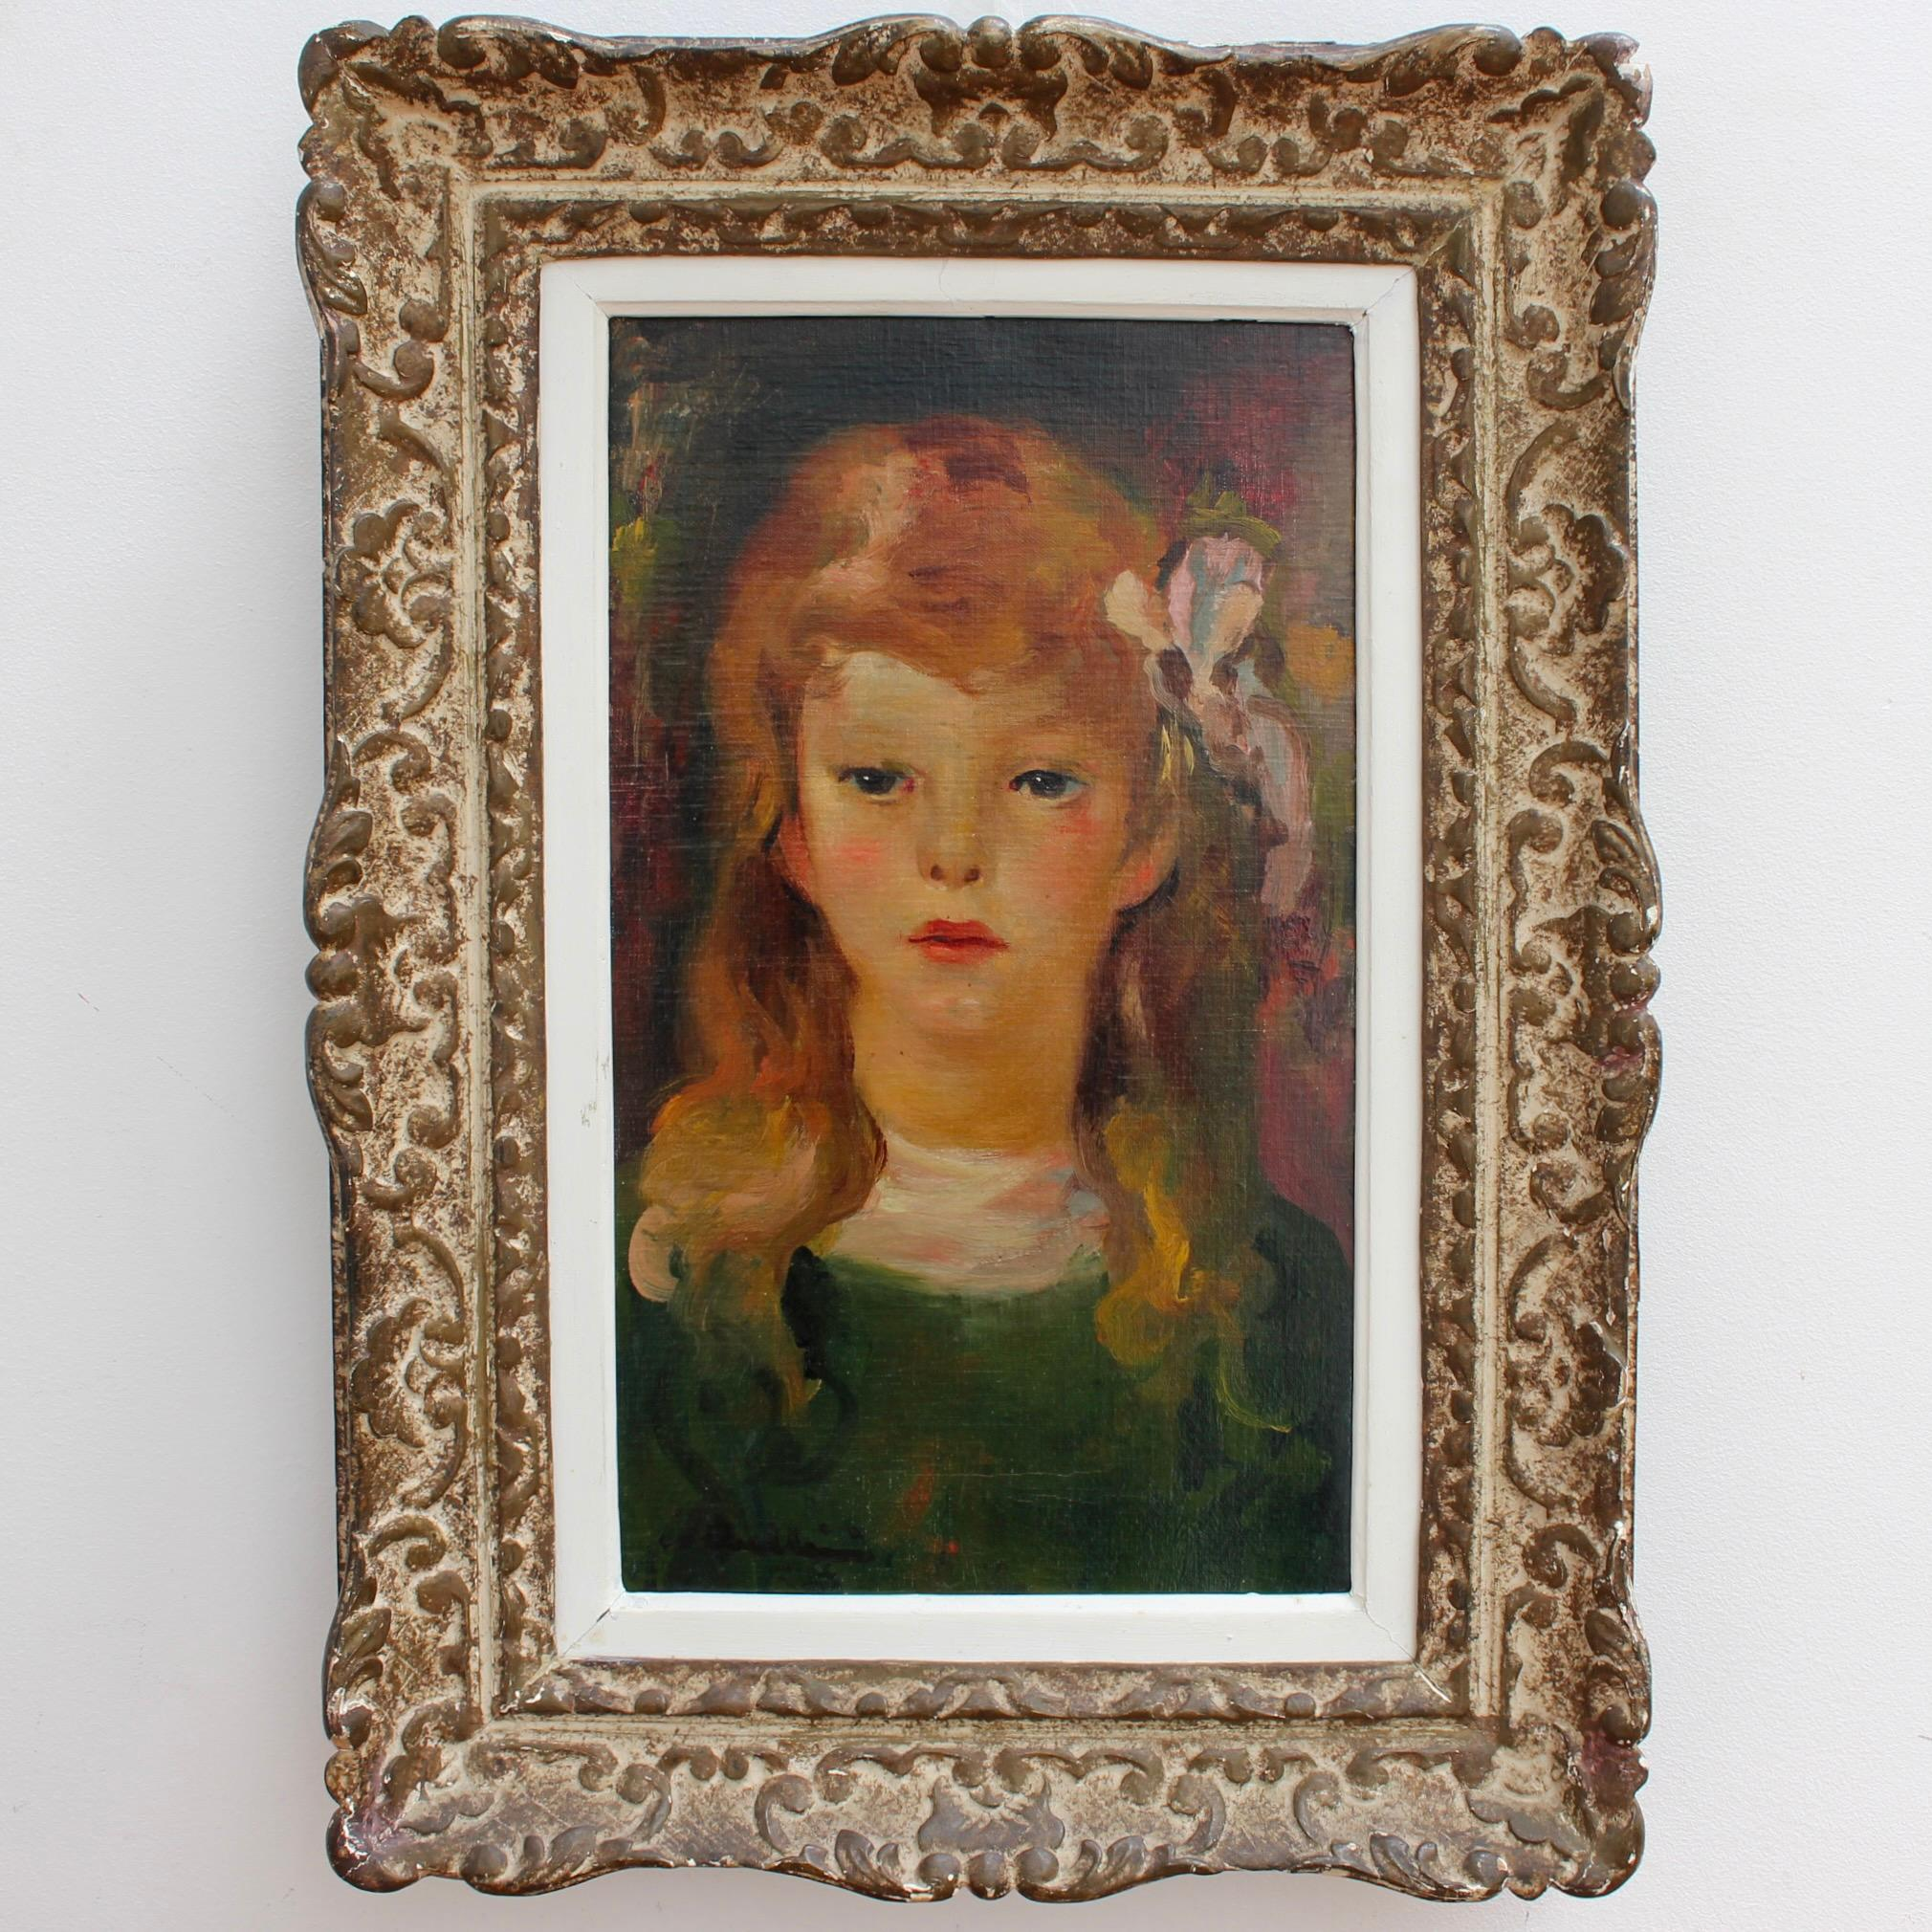 Portrait of Girl with Bow in Her Hair